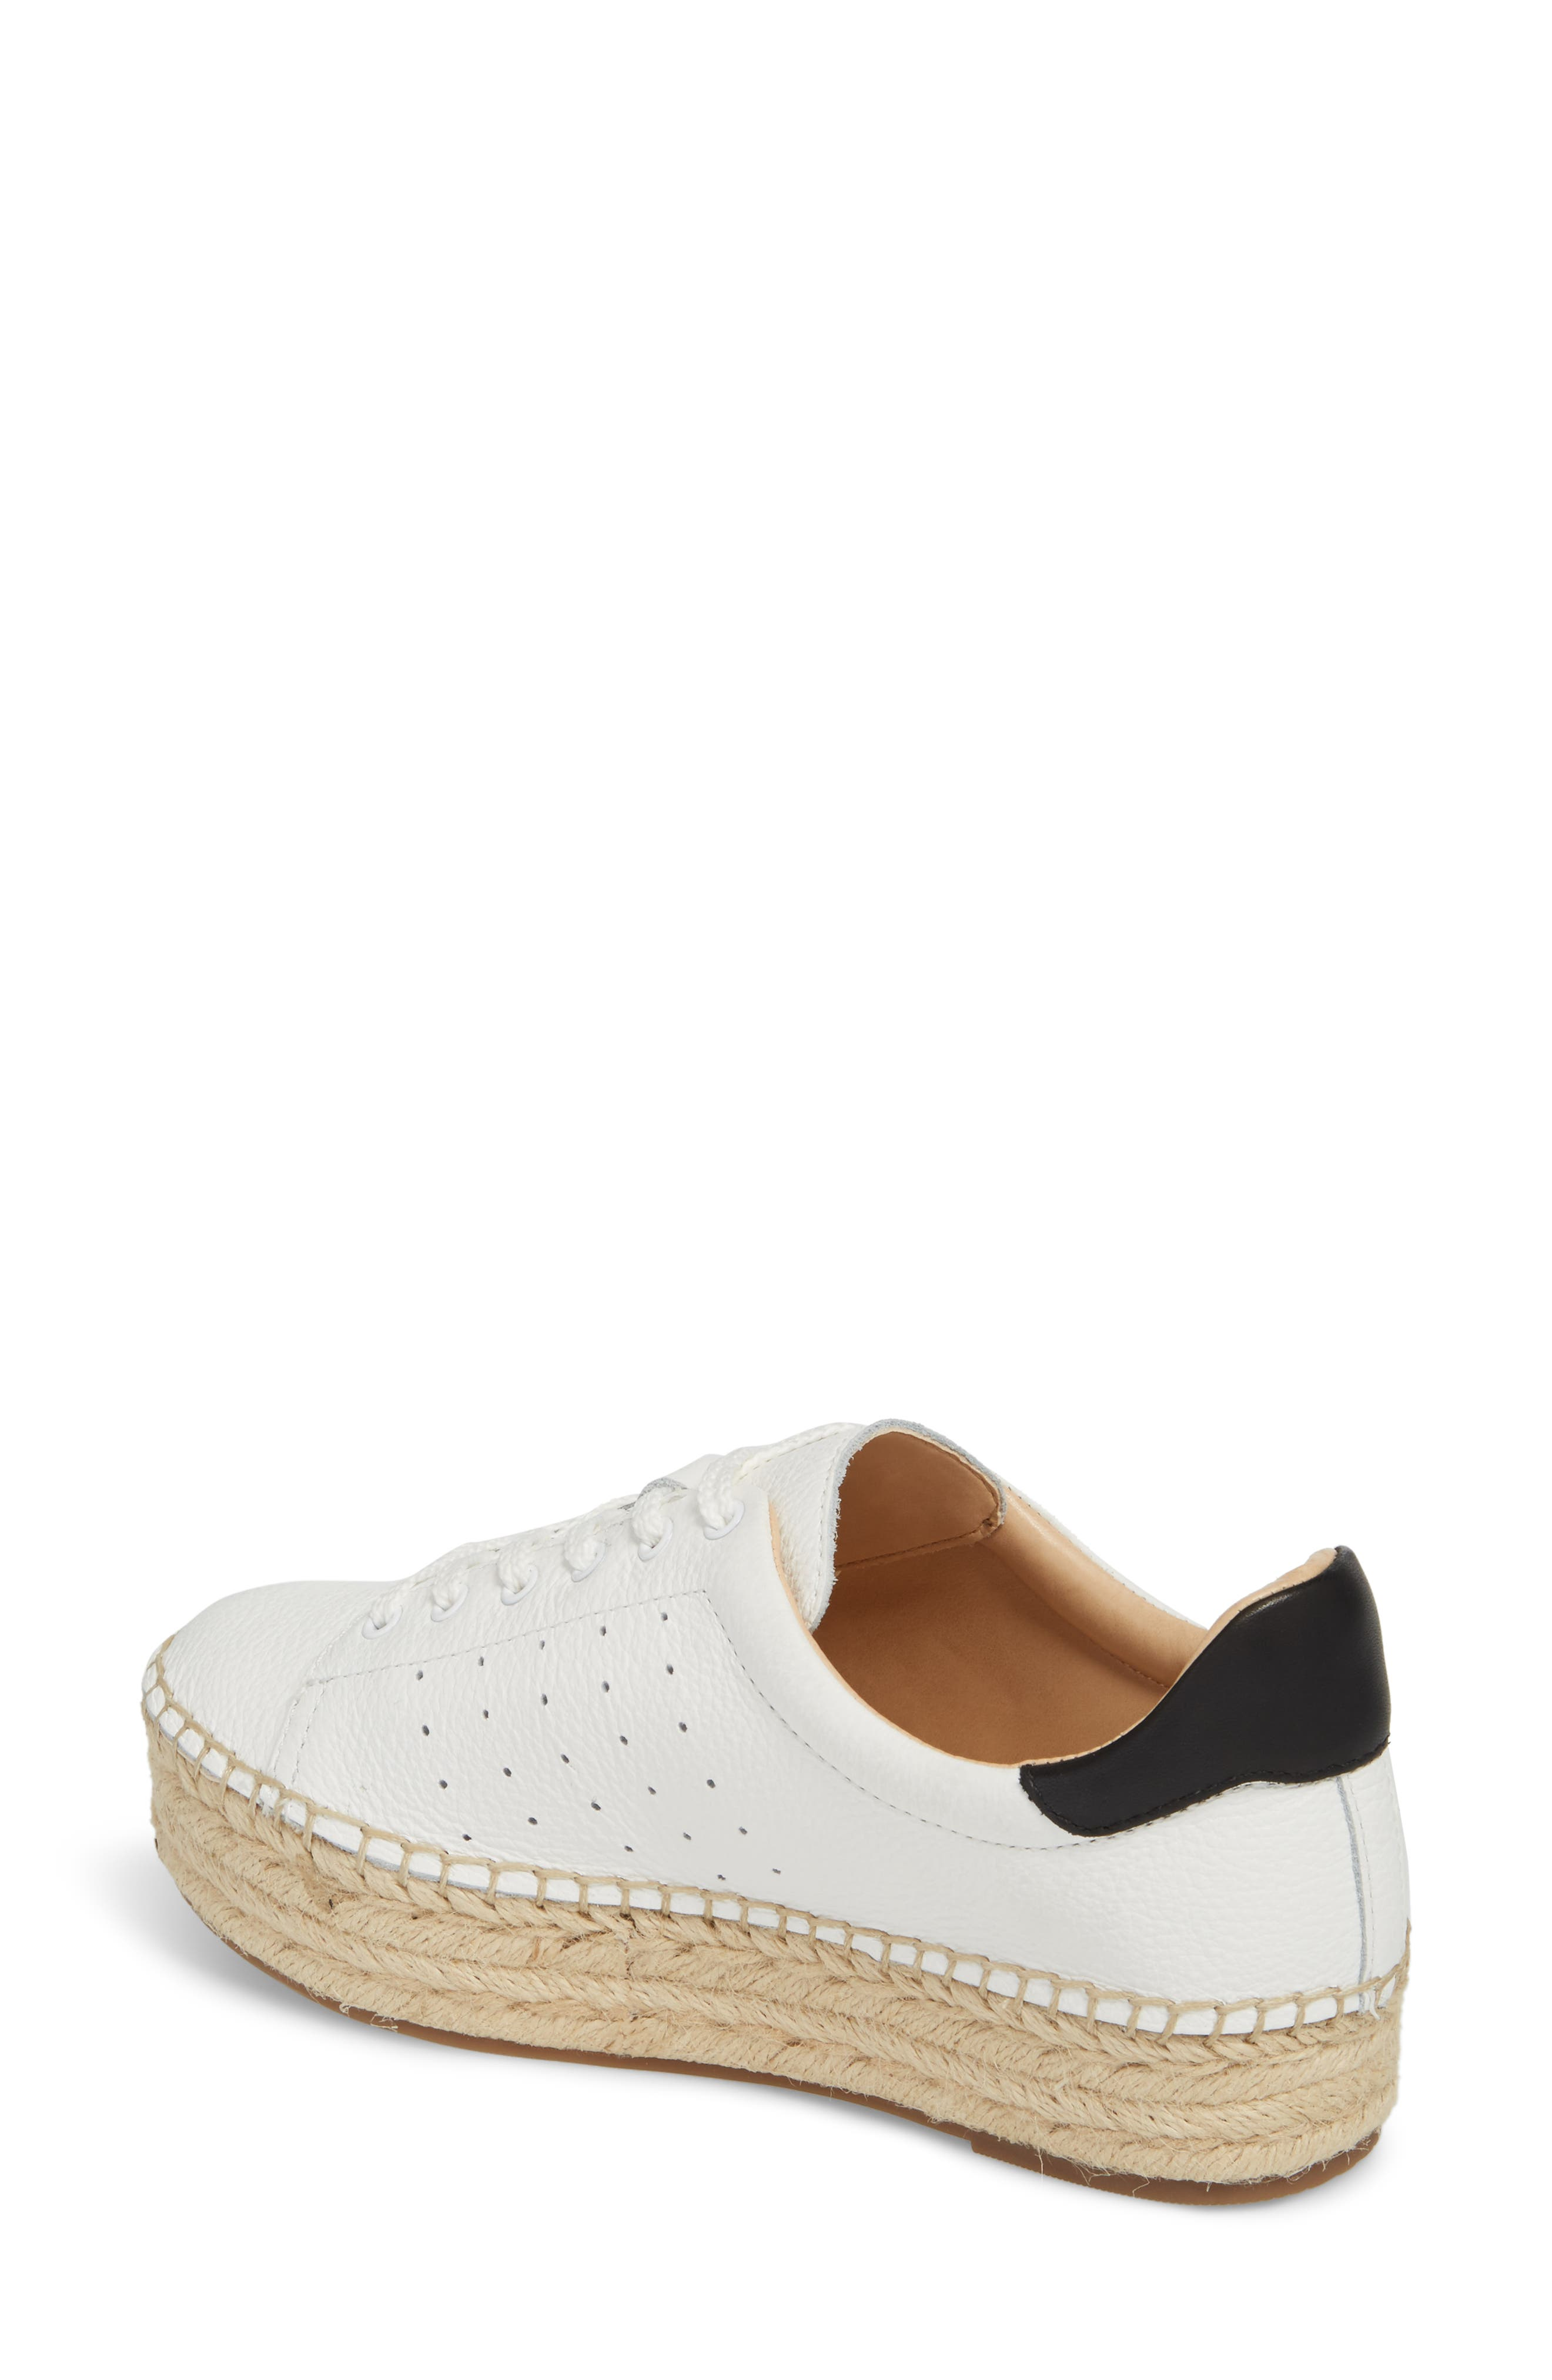 Jinnie Espadrille Sneaker,                             Alternate thumbnail 2, color,                             Picket Fence